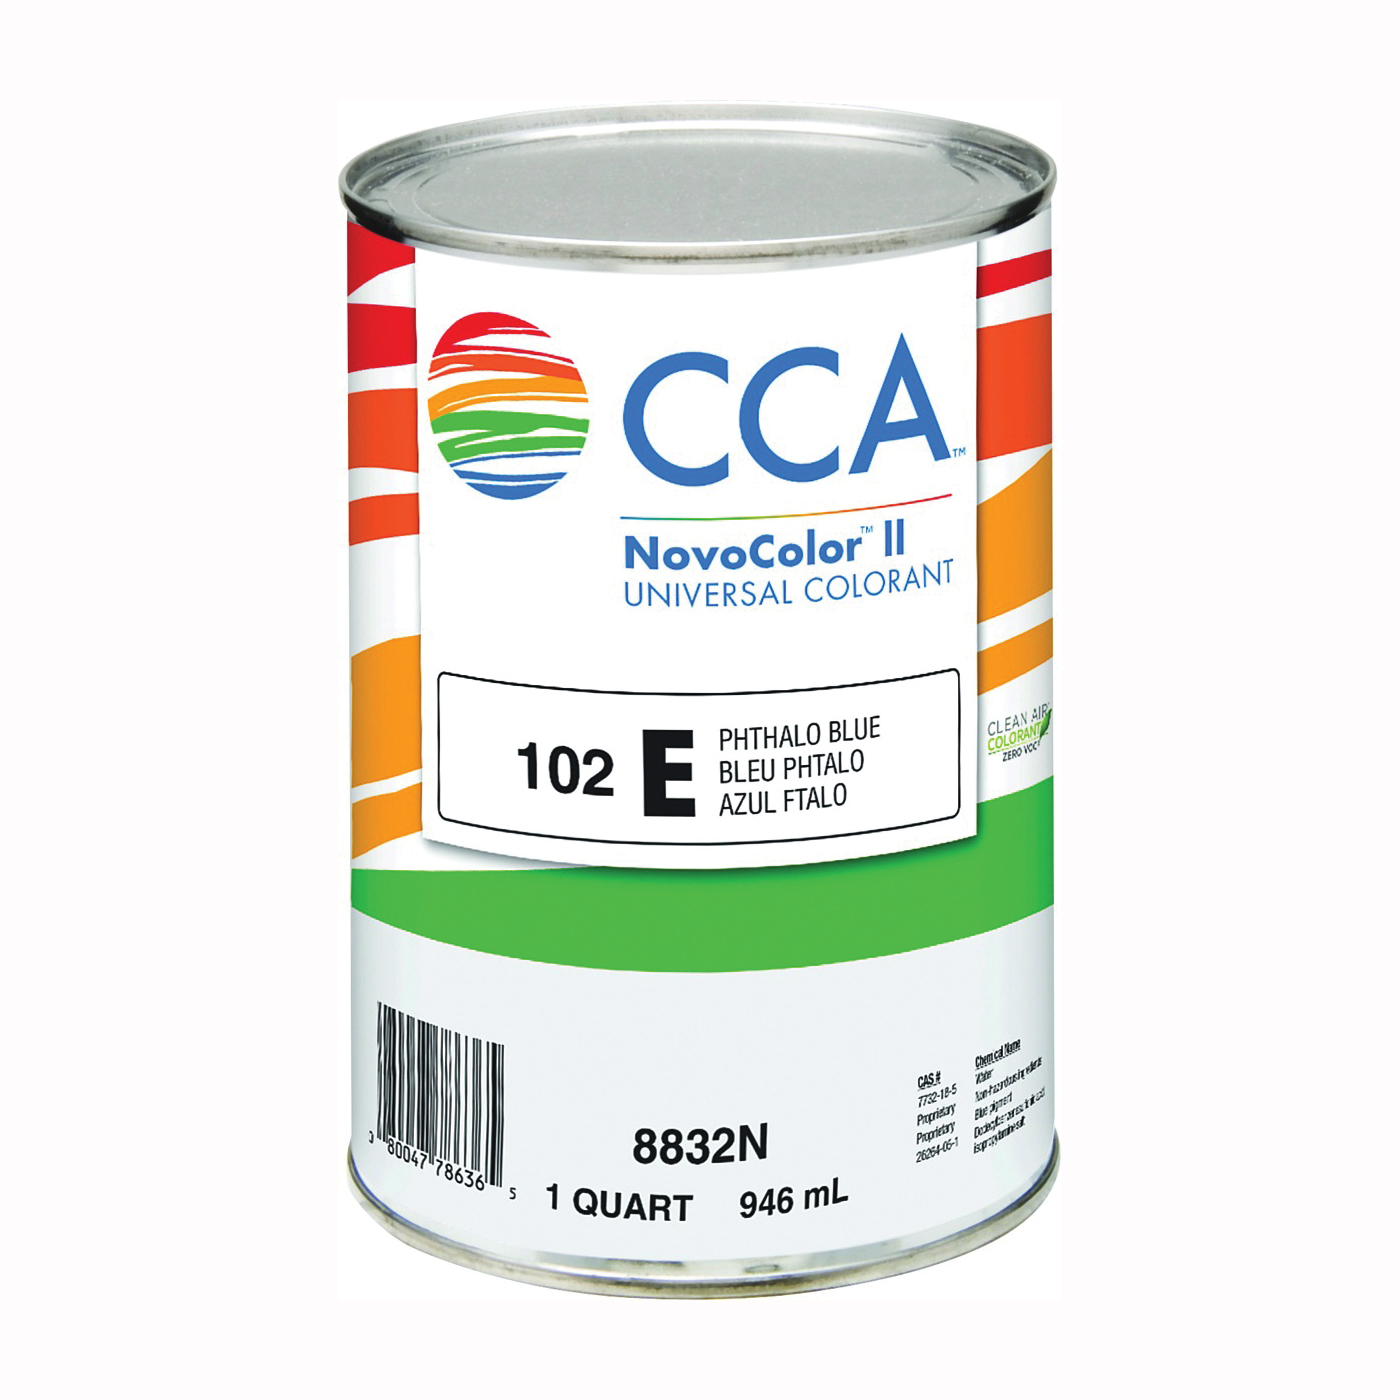 Picture of CCA NovoColor II 8832N Universal Colorant, Phthalo Blue, Liquid, 1 qt Package